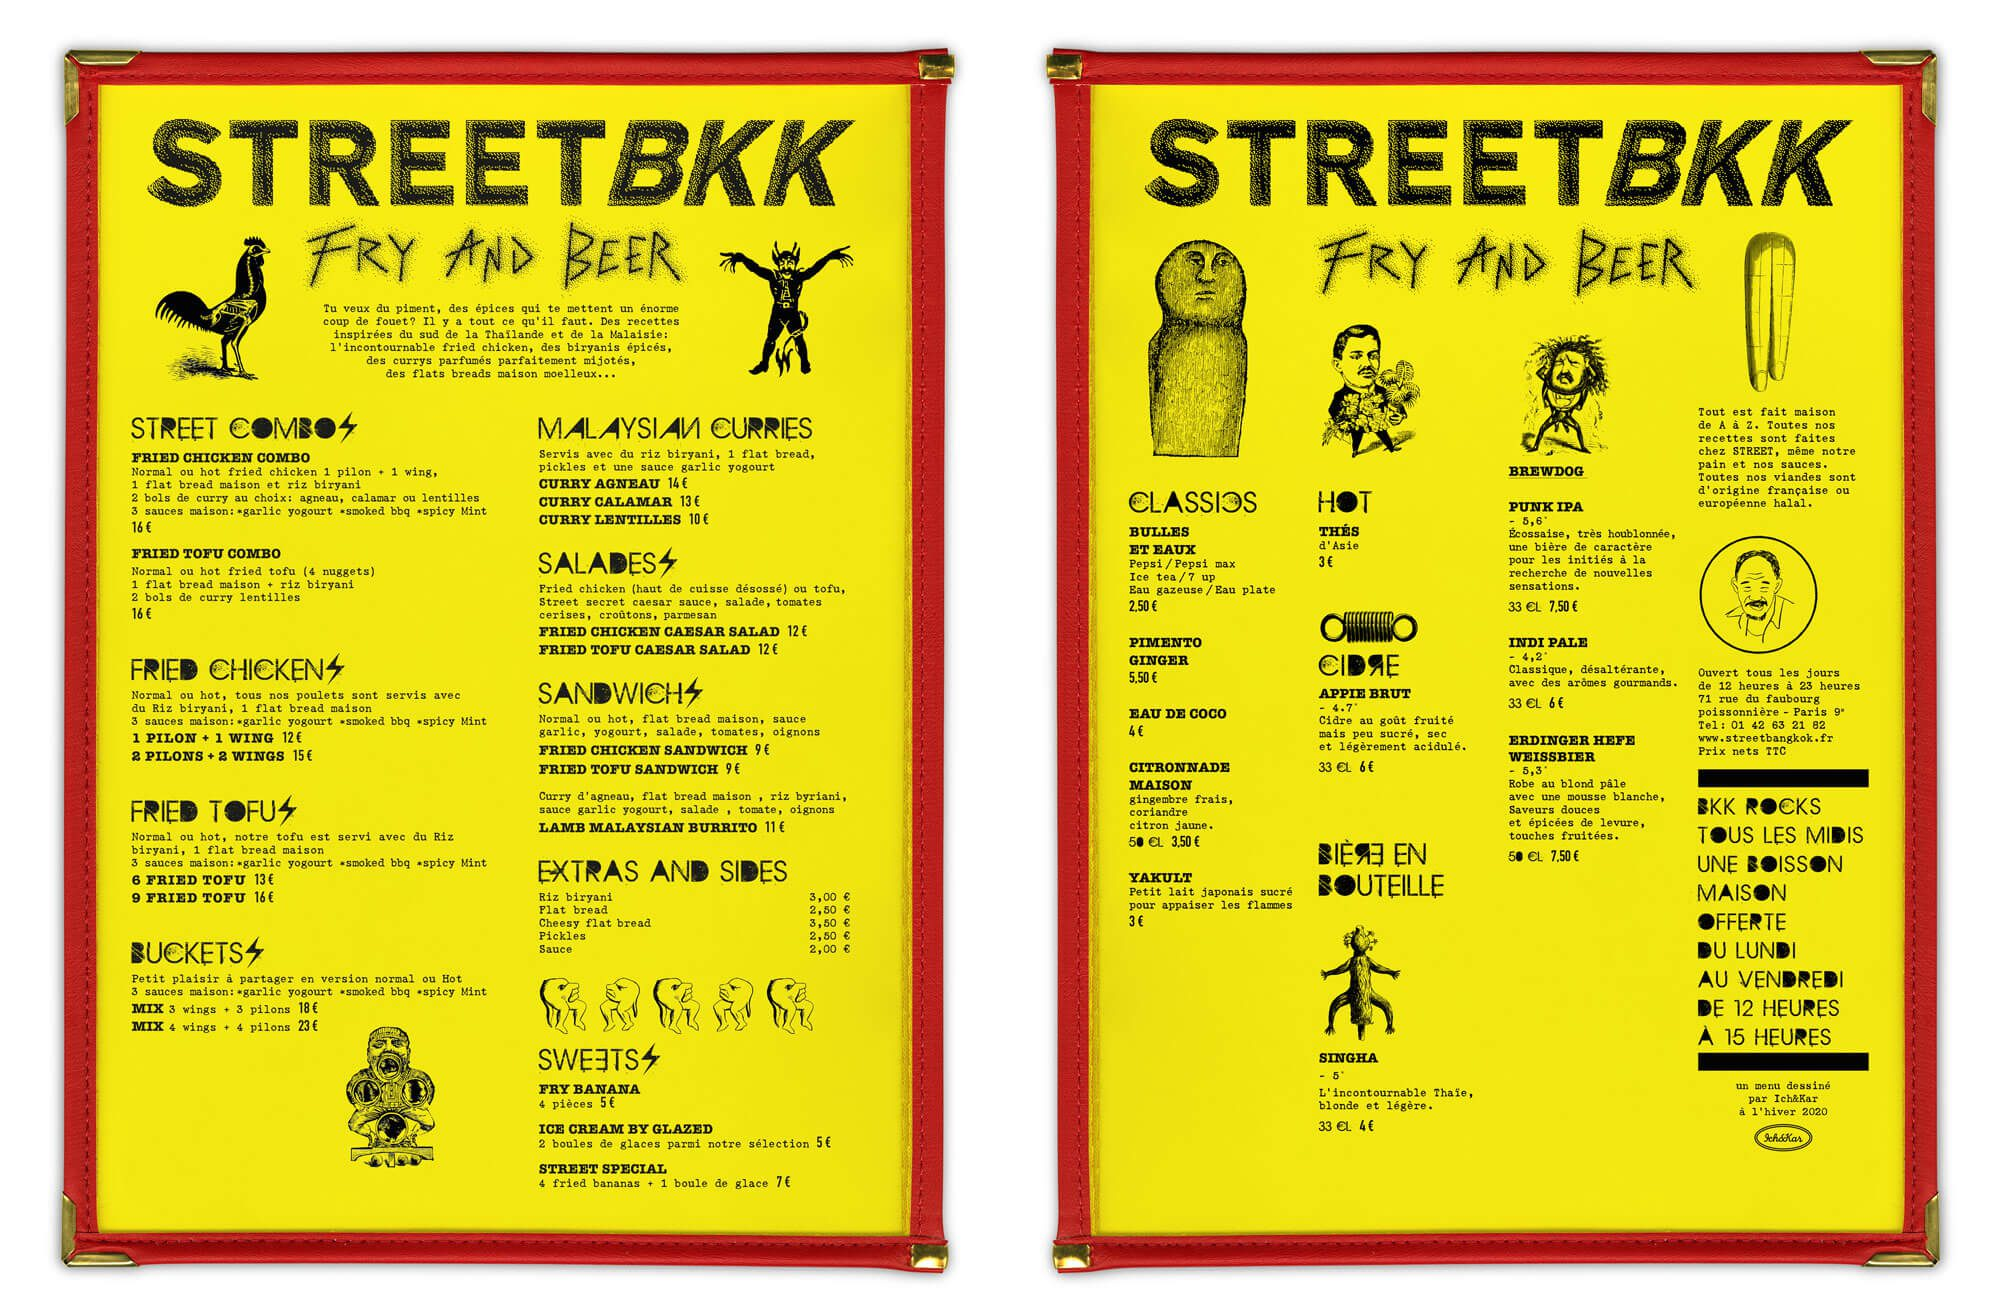 Menu Punk trash street bkk